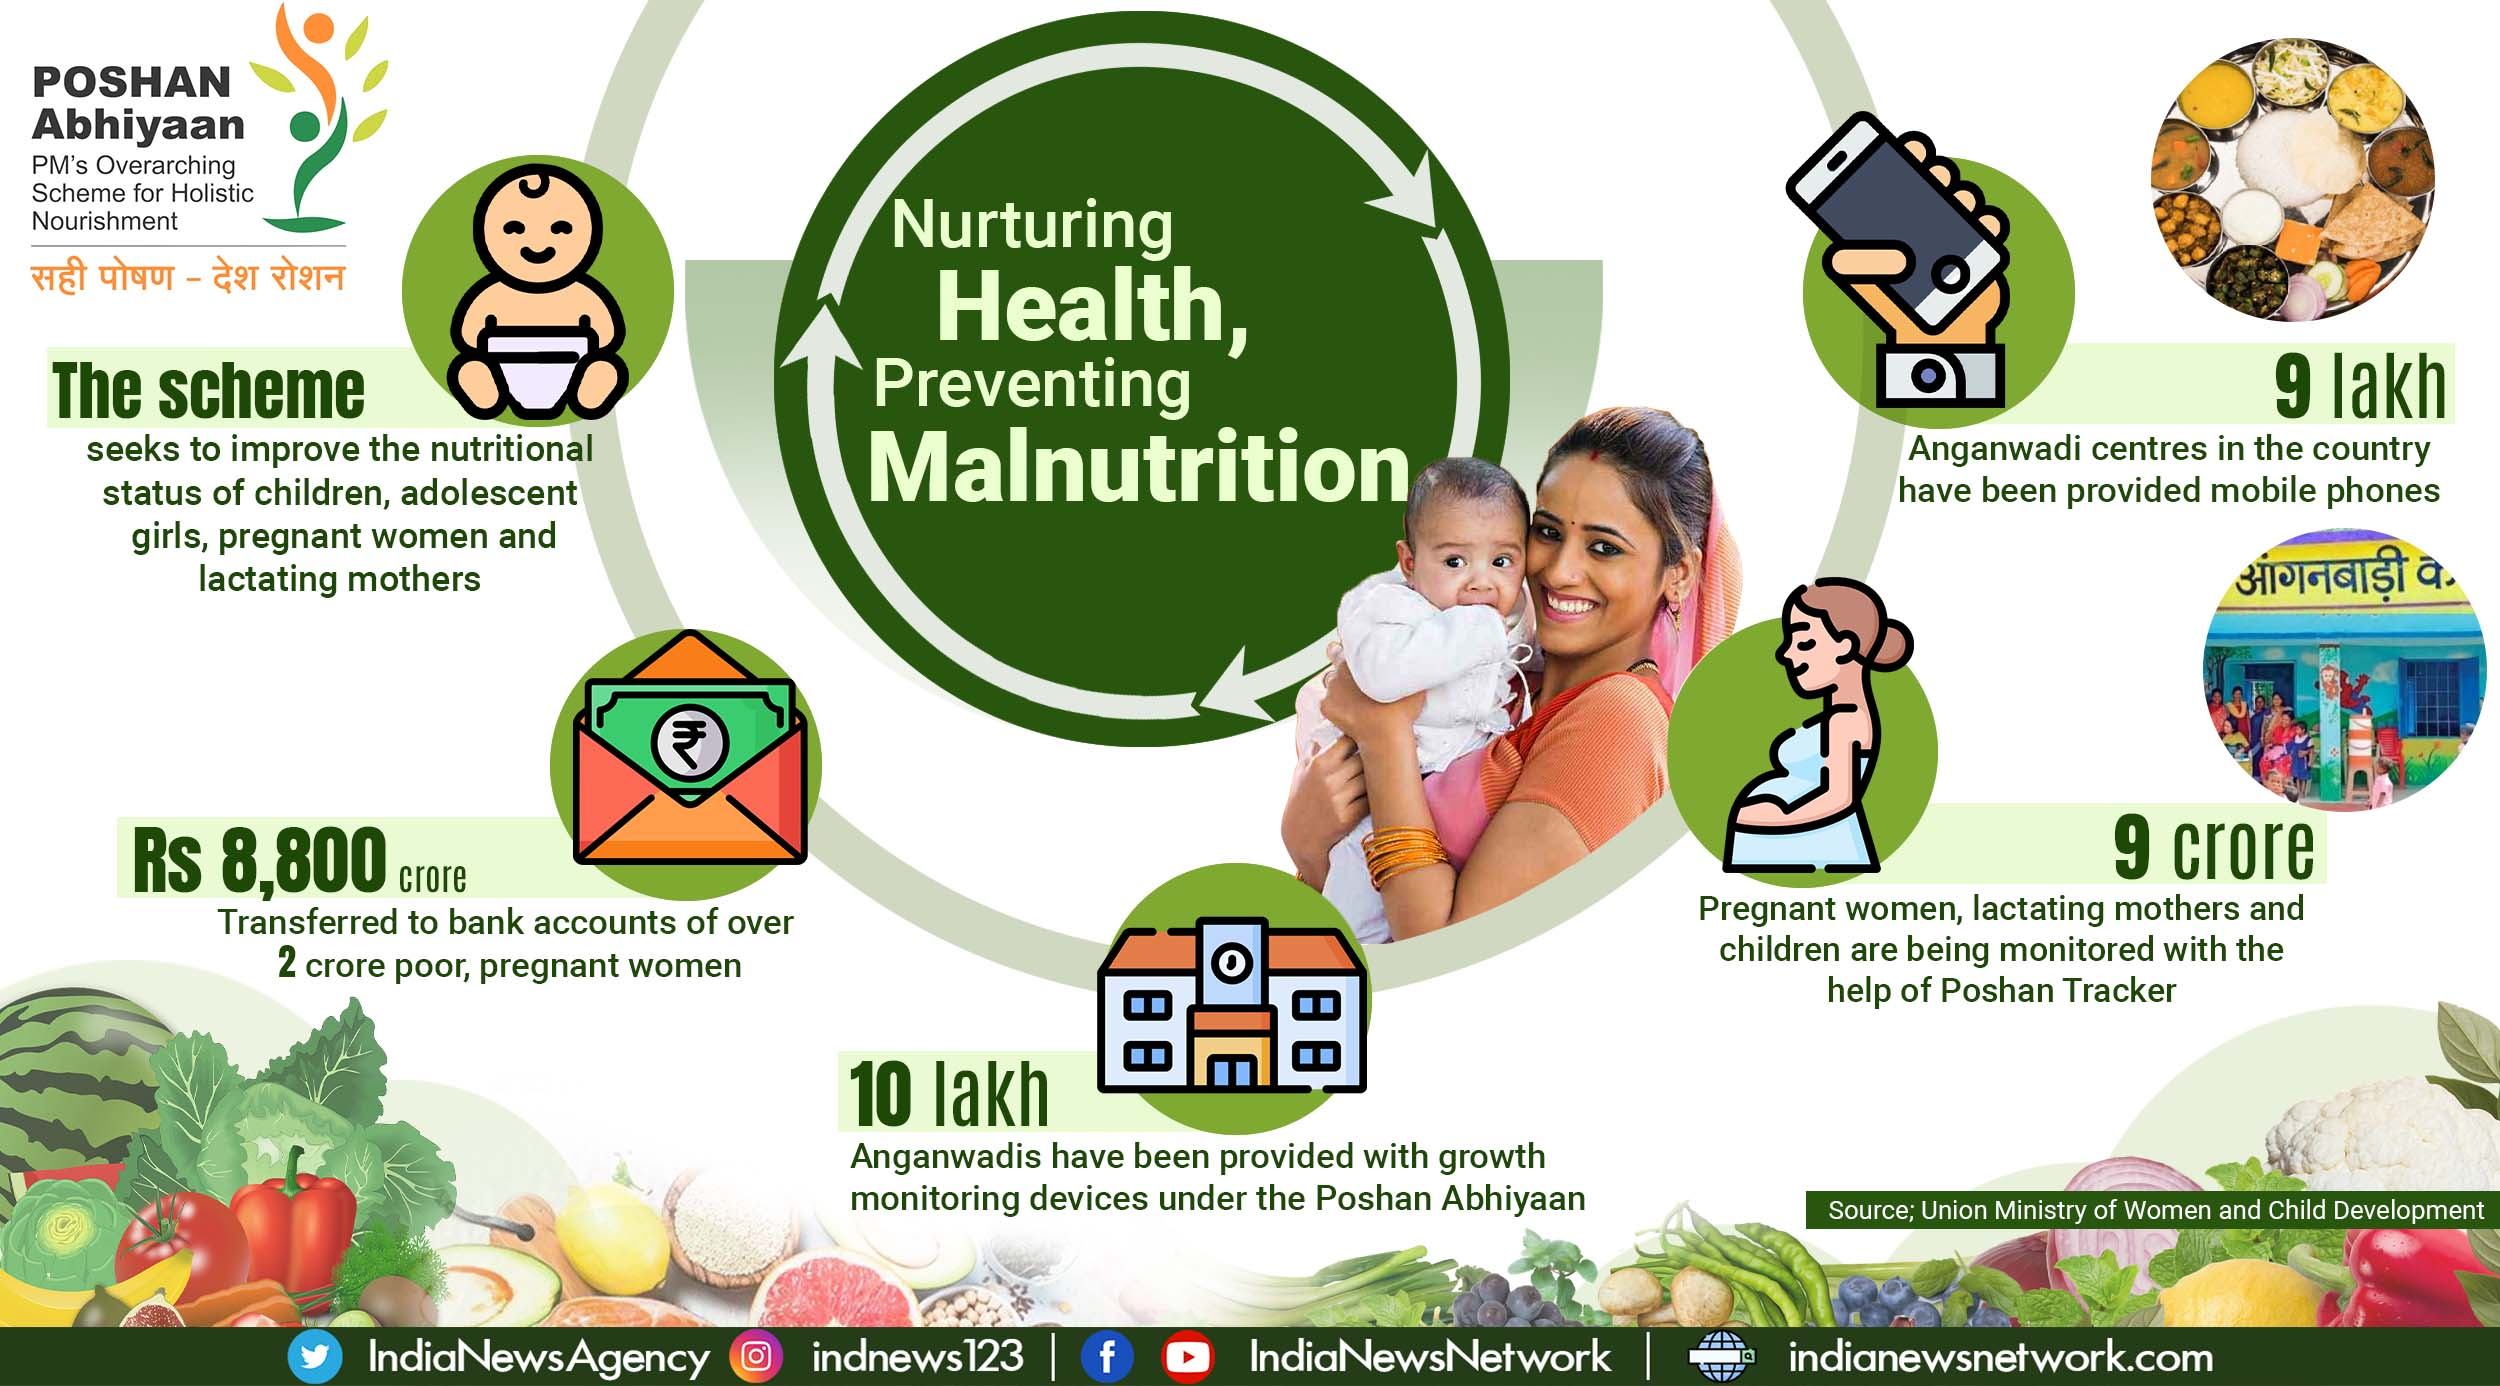 Poshan Abhiyaan: How India is improving the health of women and children